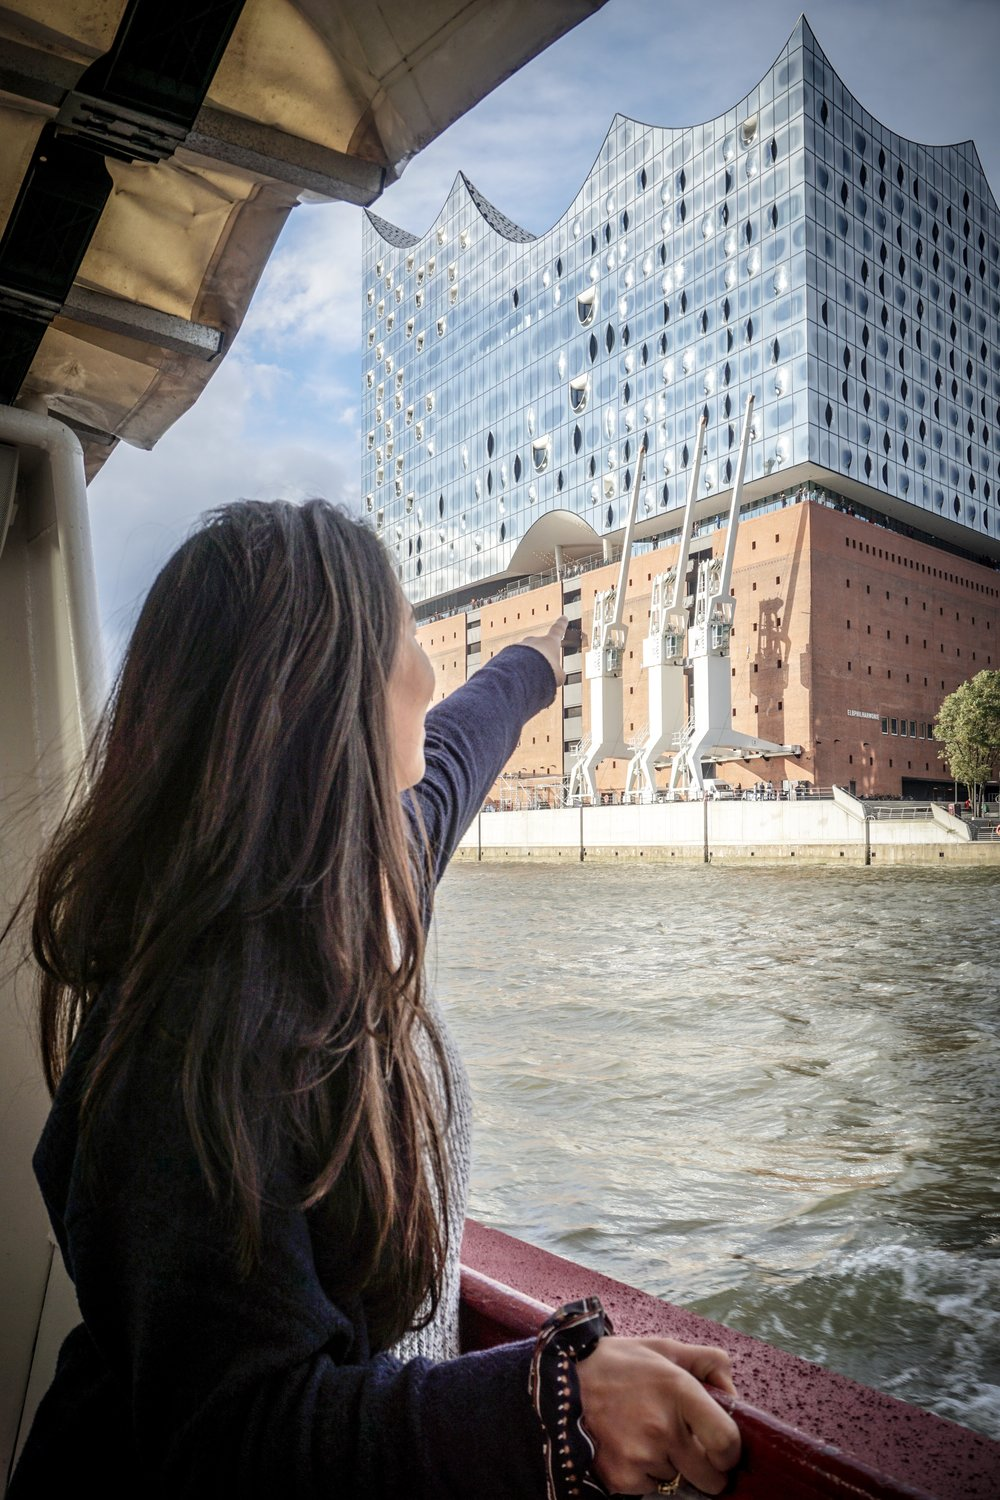 View of the Elbphilharmonie from our boat!